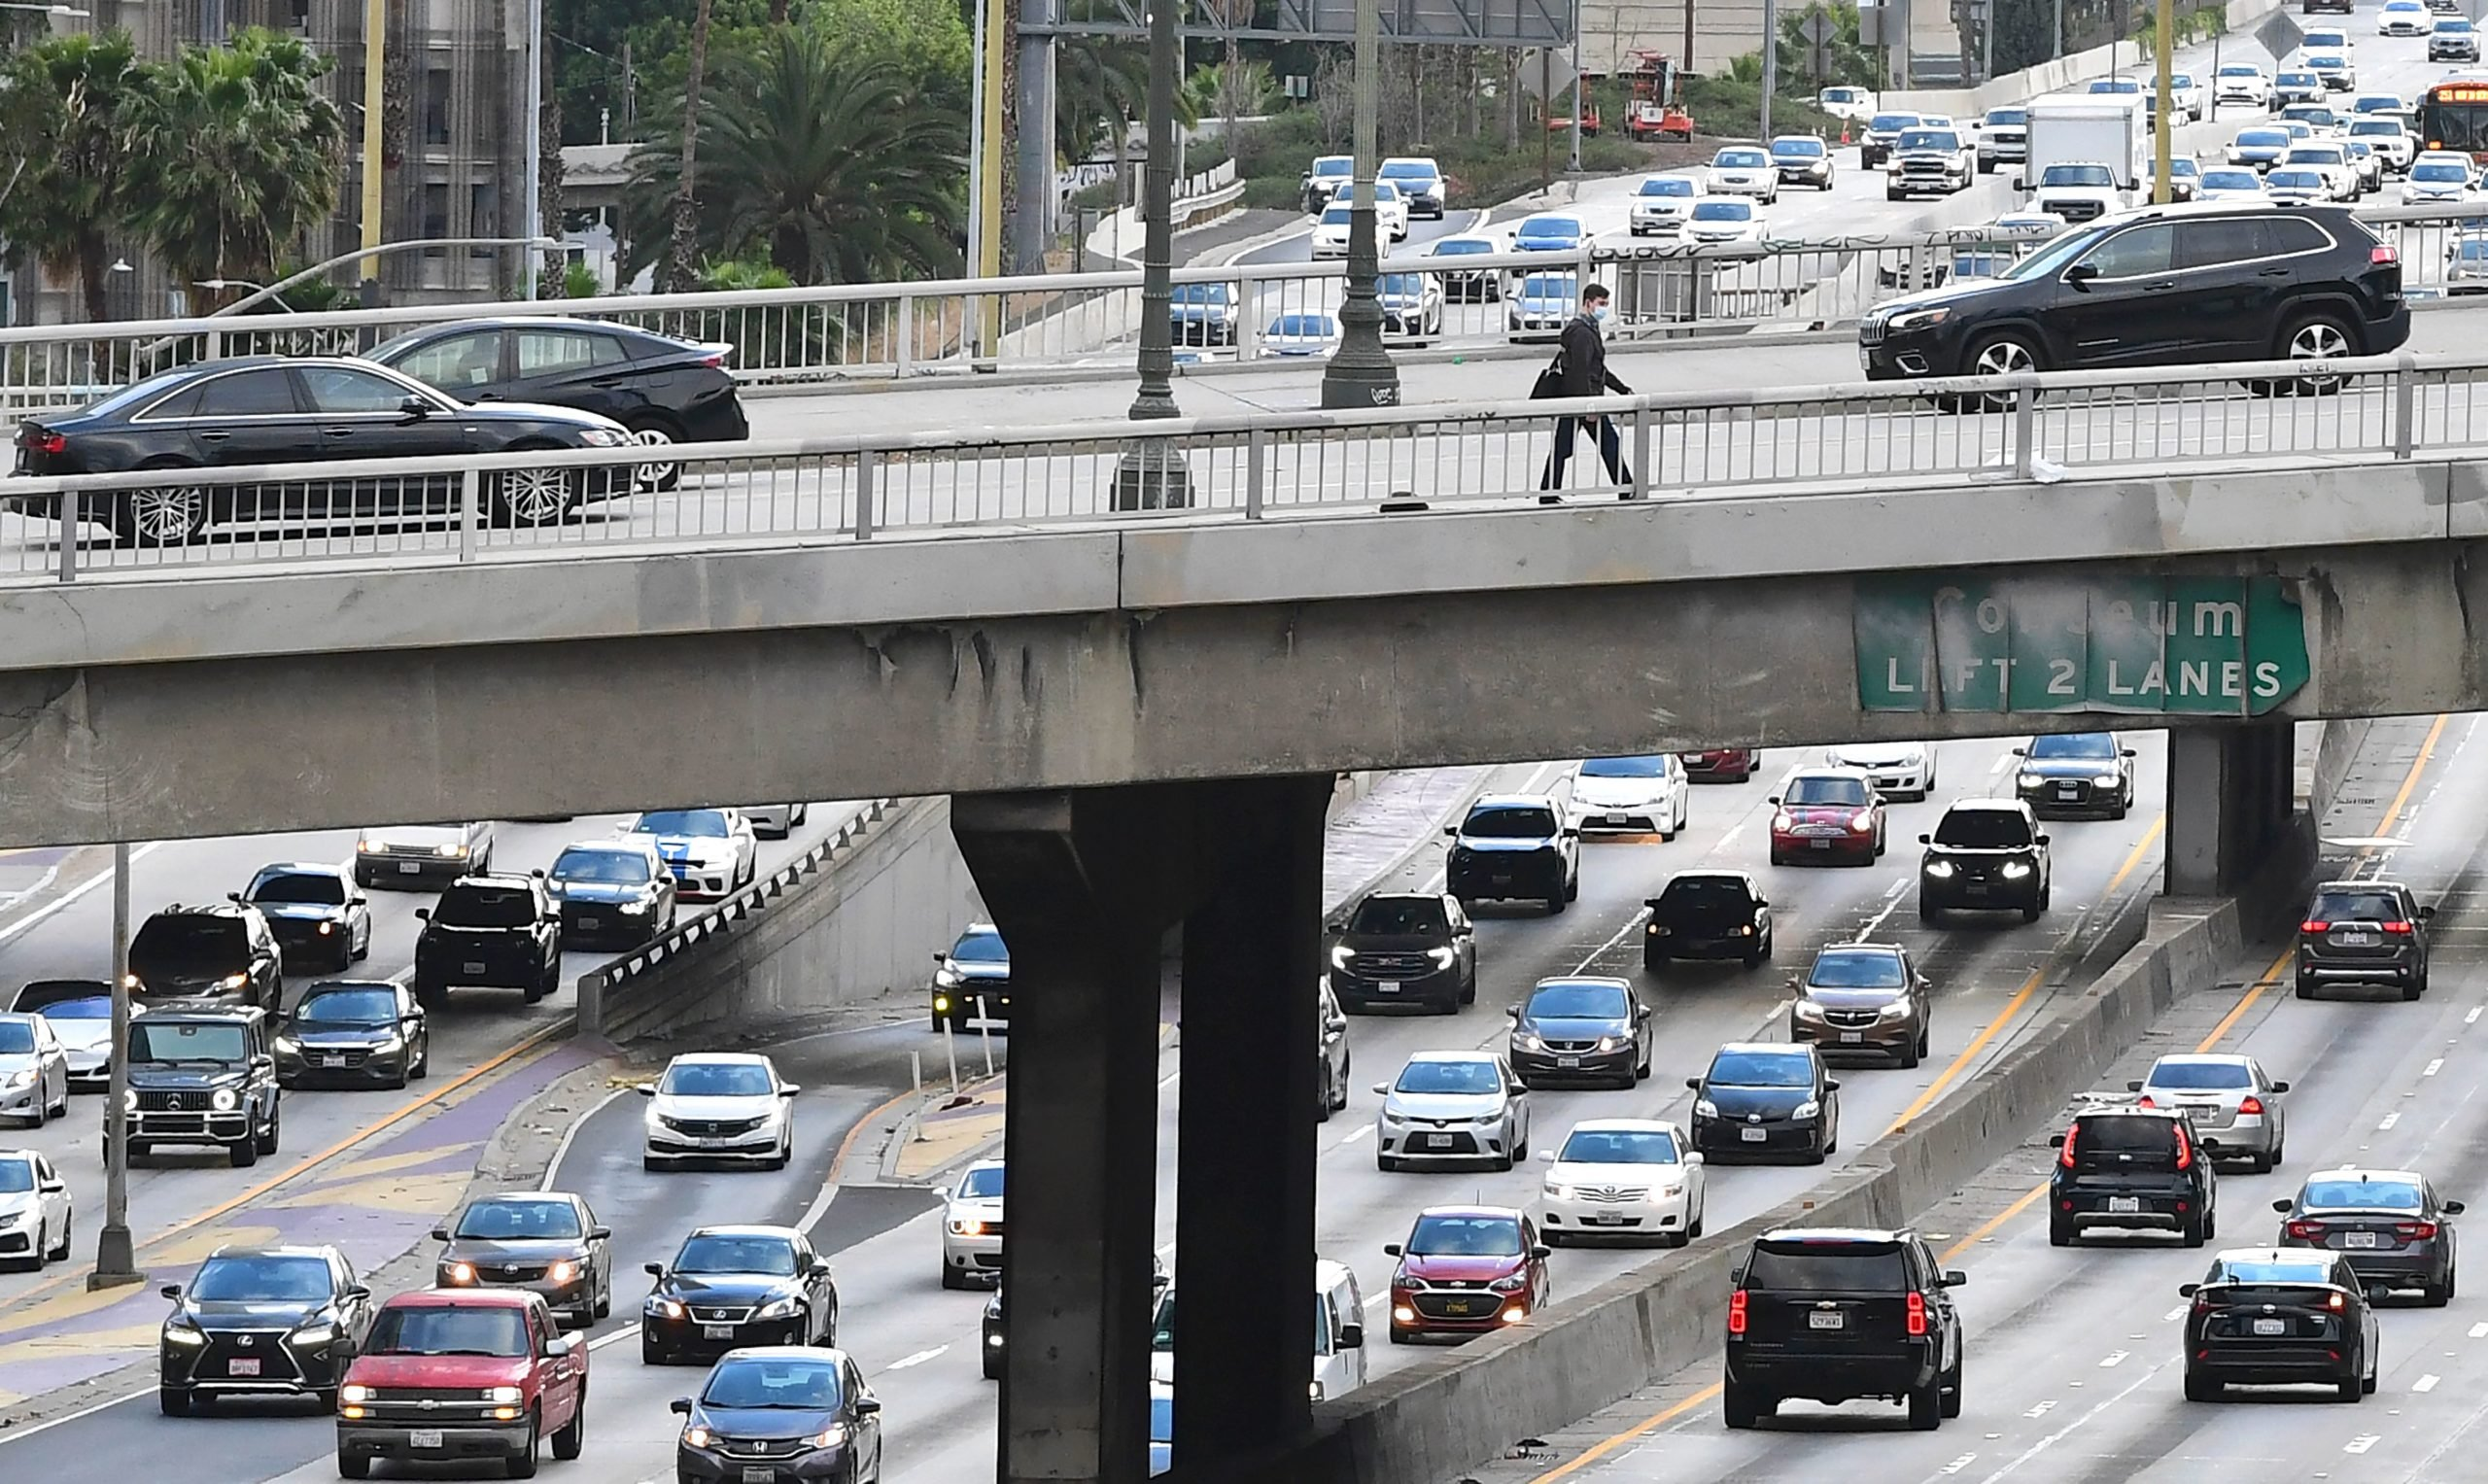 A pedestrian crosses an overpass above afternoon rush hour traffic in Los Angeles, California on April 26, 2021. (Photo by Frederic J. BROWN / AFP via Getty Images)